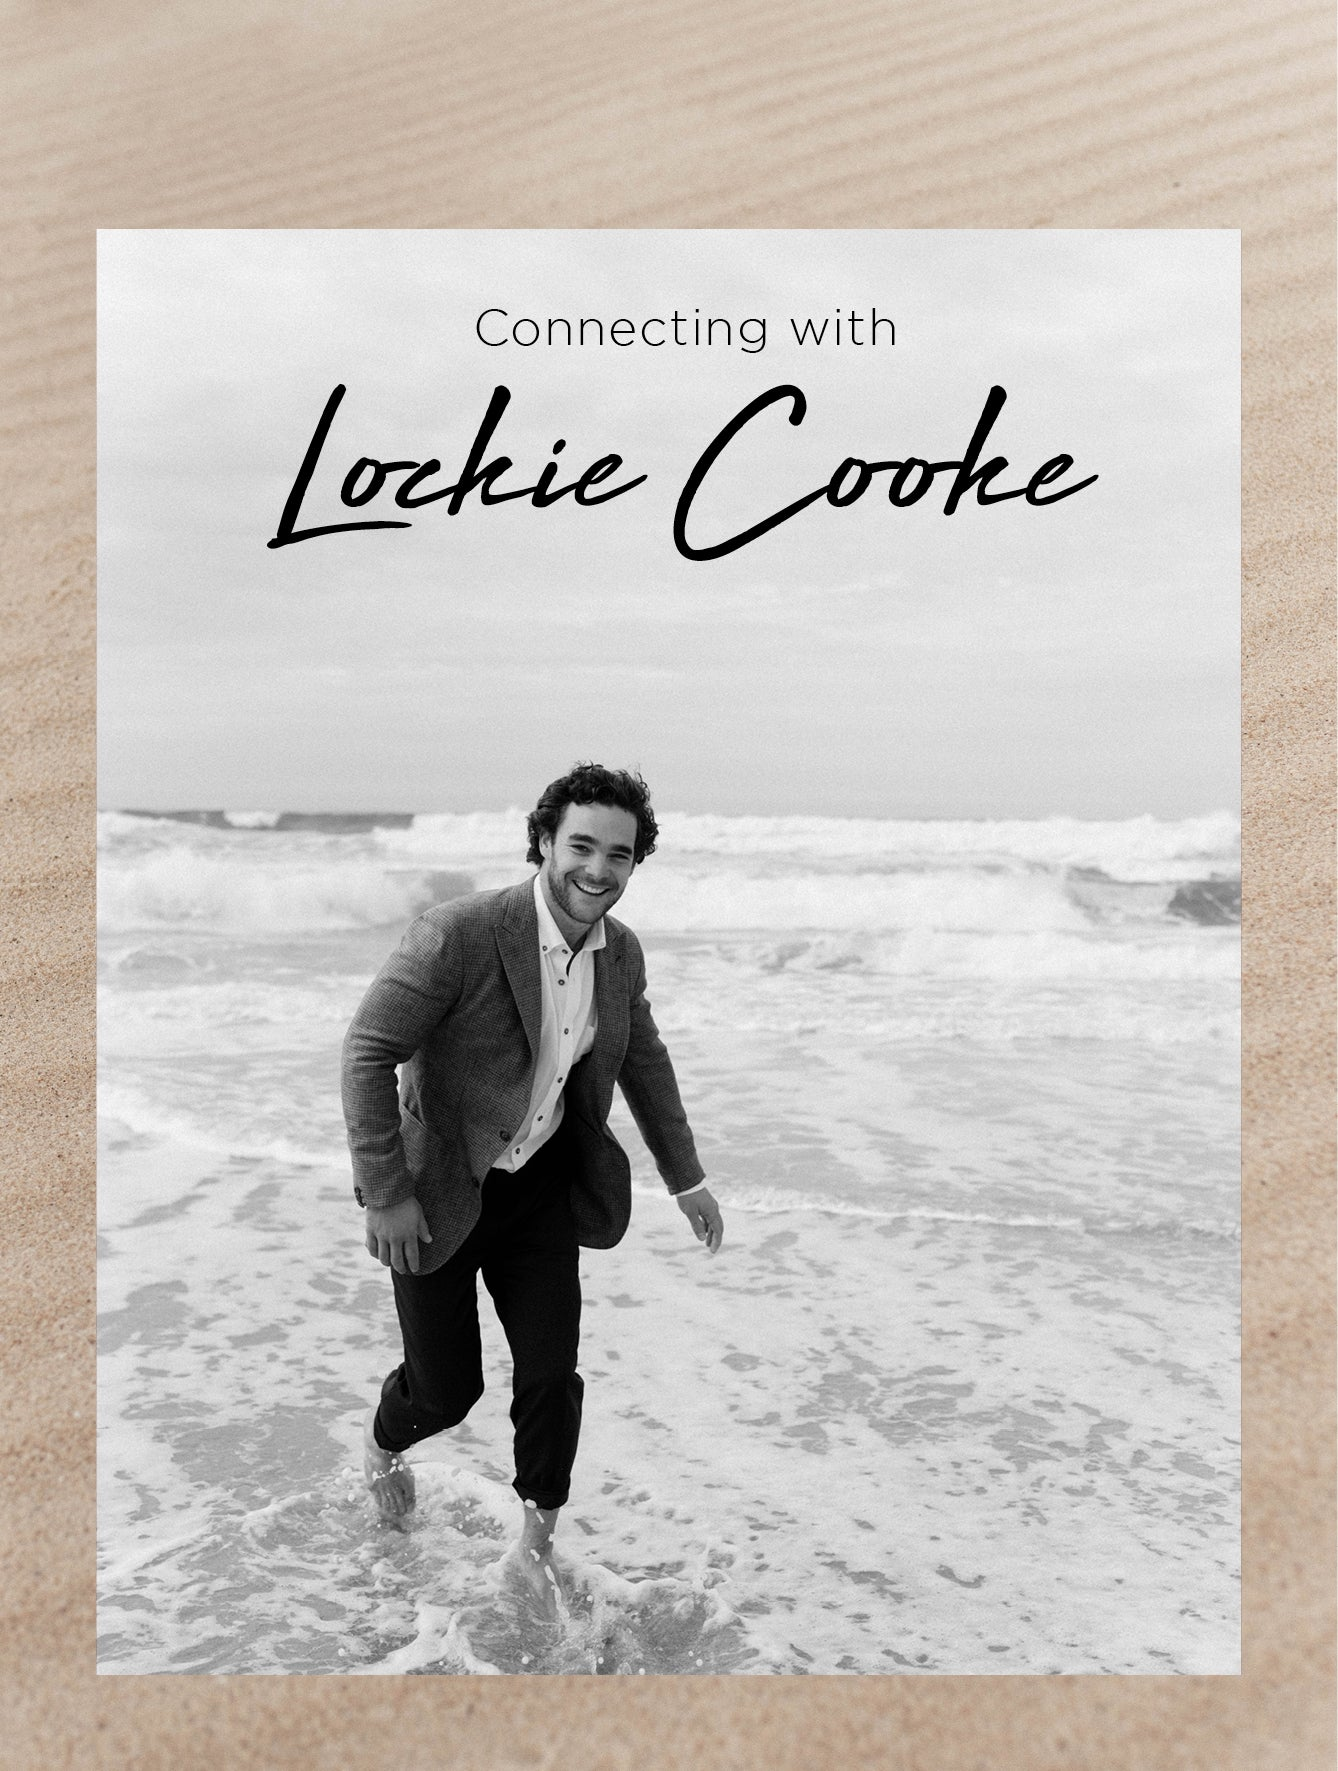 IN CONVERSATION WITH LOCKIE COOKE